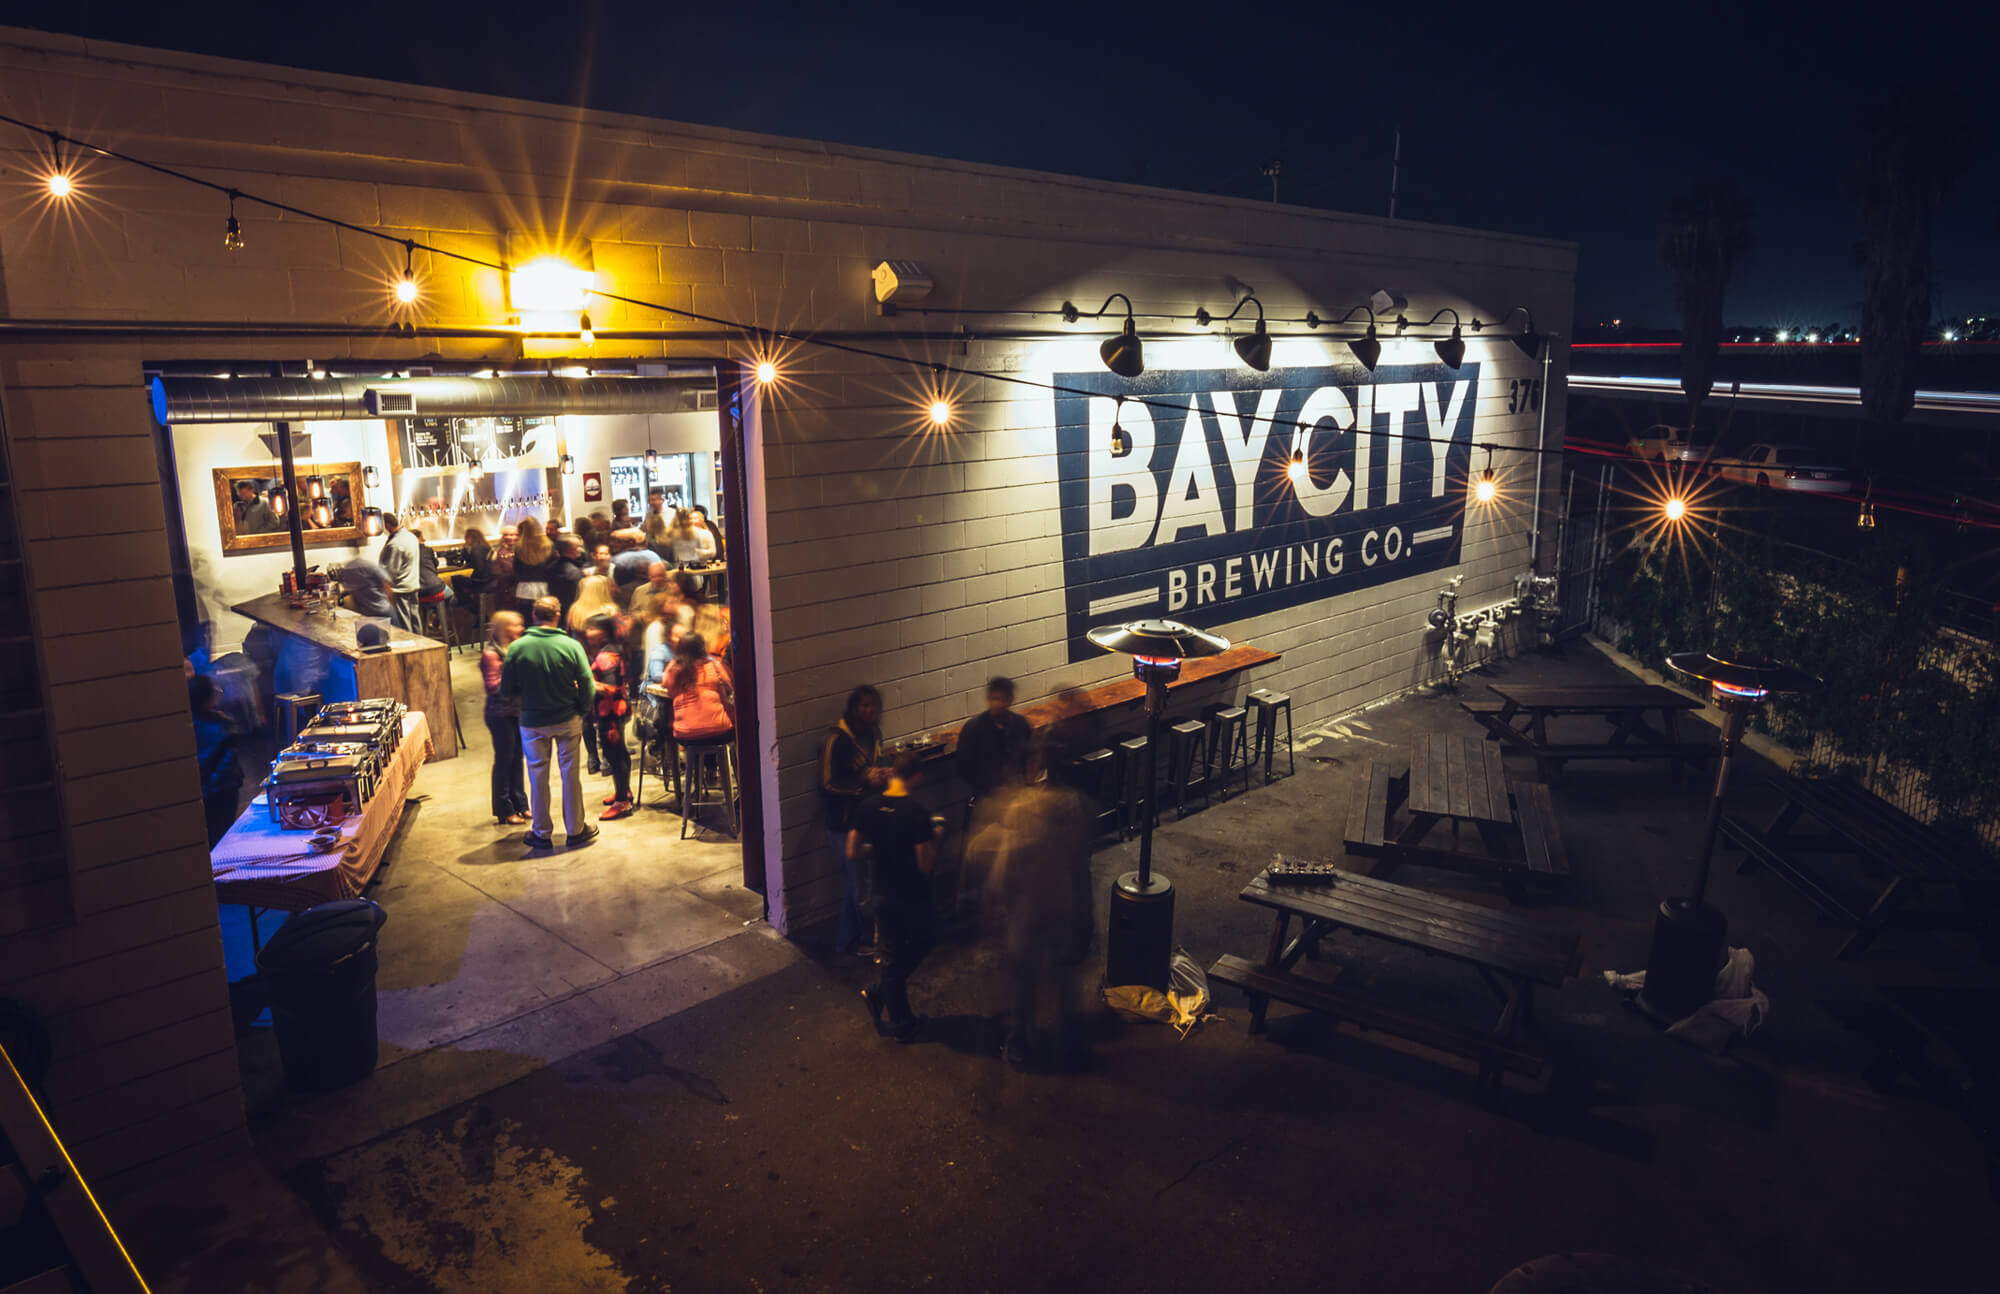 bay-city-brewing-company-sandiego-10